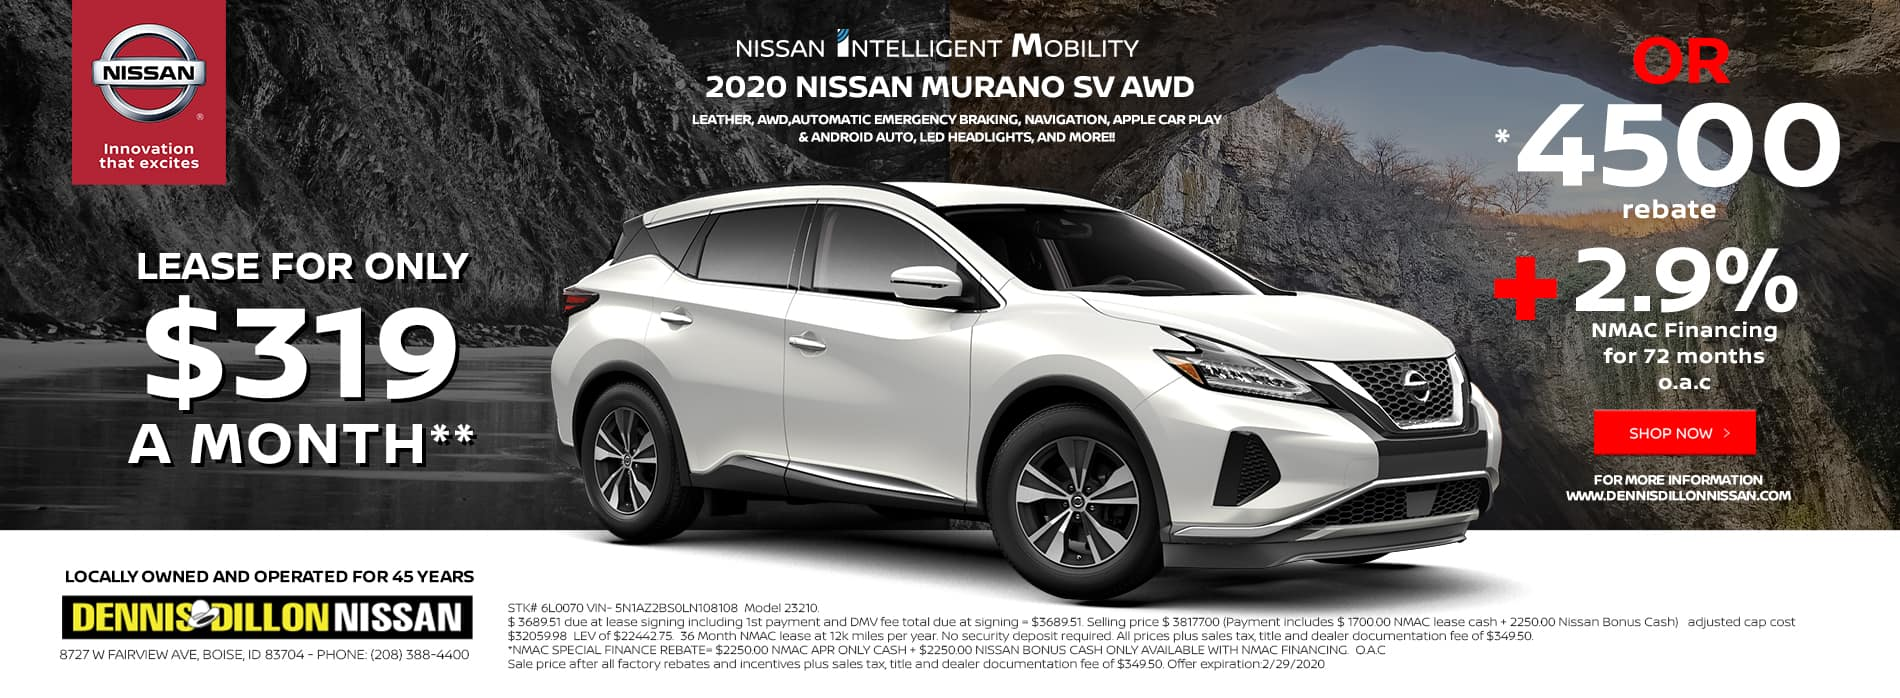 Nearby Nissan Dealership Near Me Albumccars Cars Images Collection And laugh and feel like you at home.jenkins nissan is the place i want to thank the sales team and the. albumccars cars images collection blogger